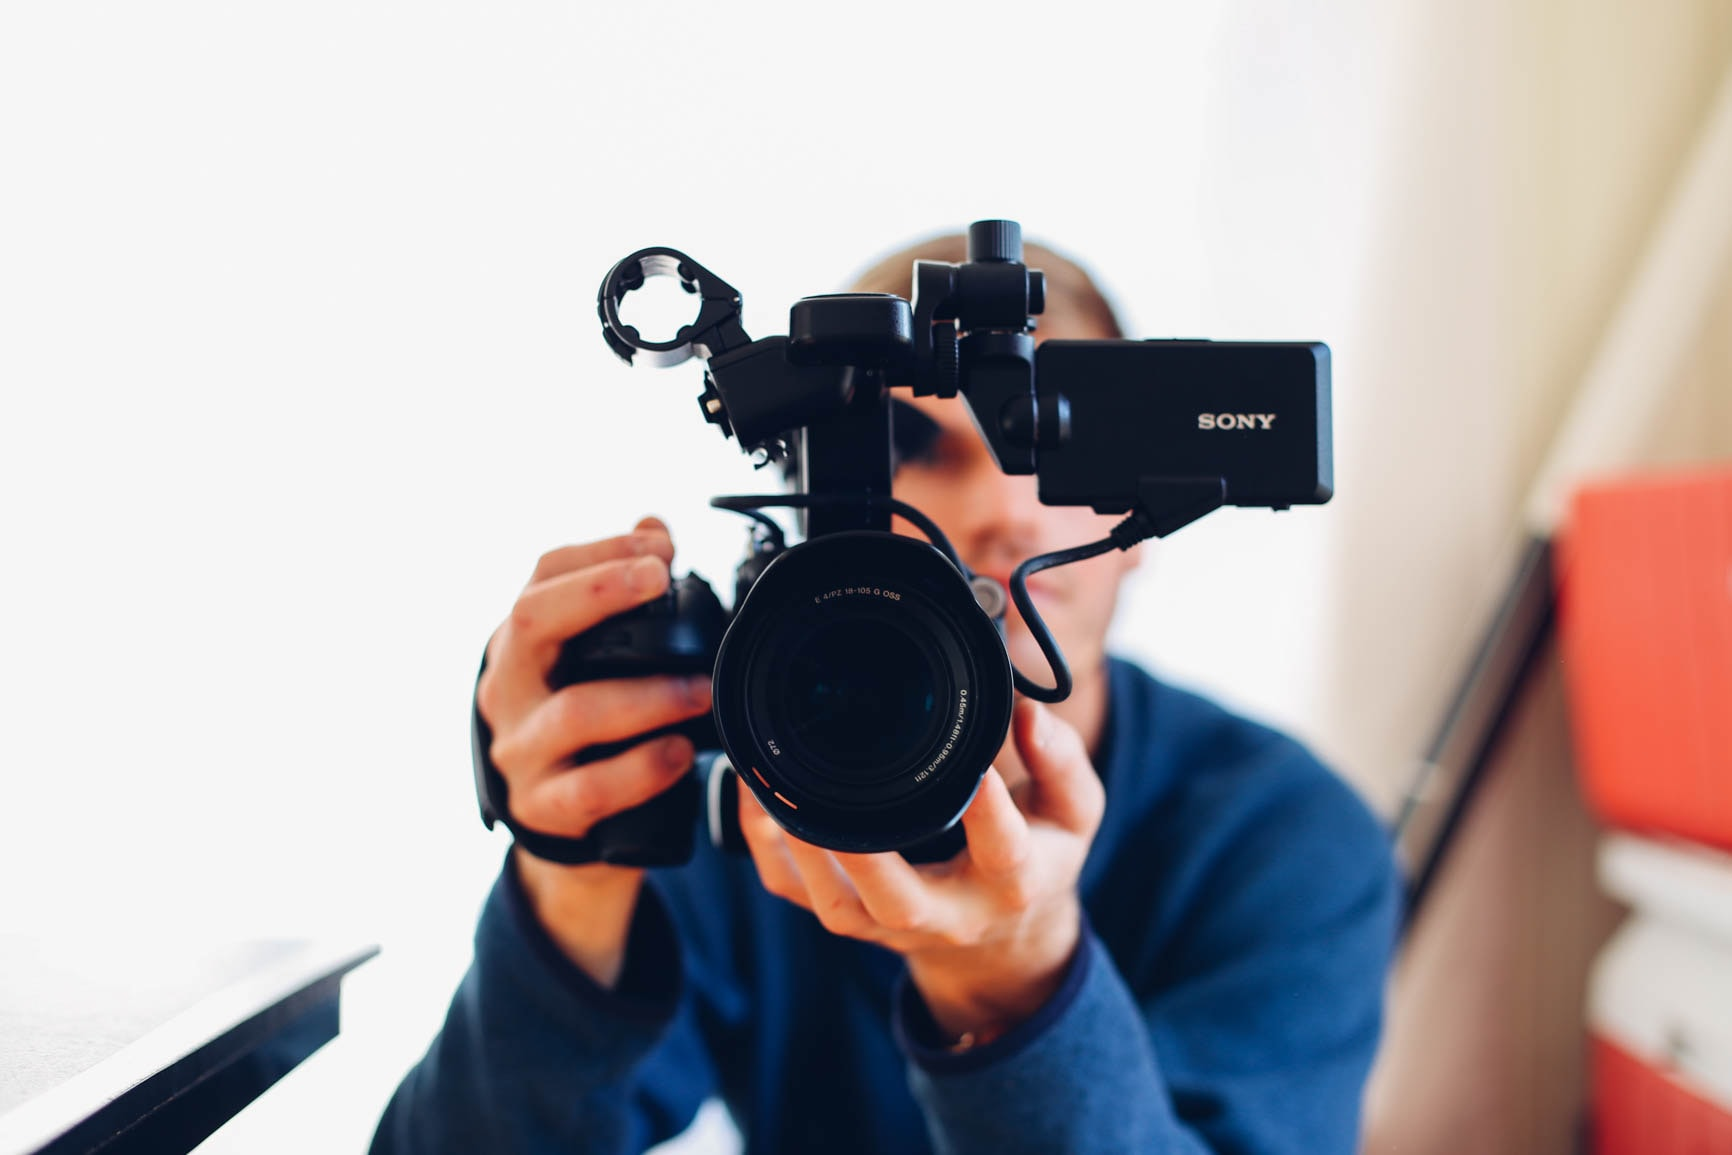 social video stats every marketer should know